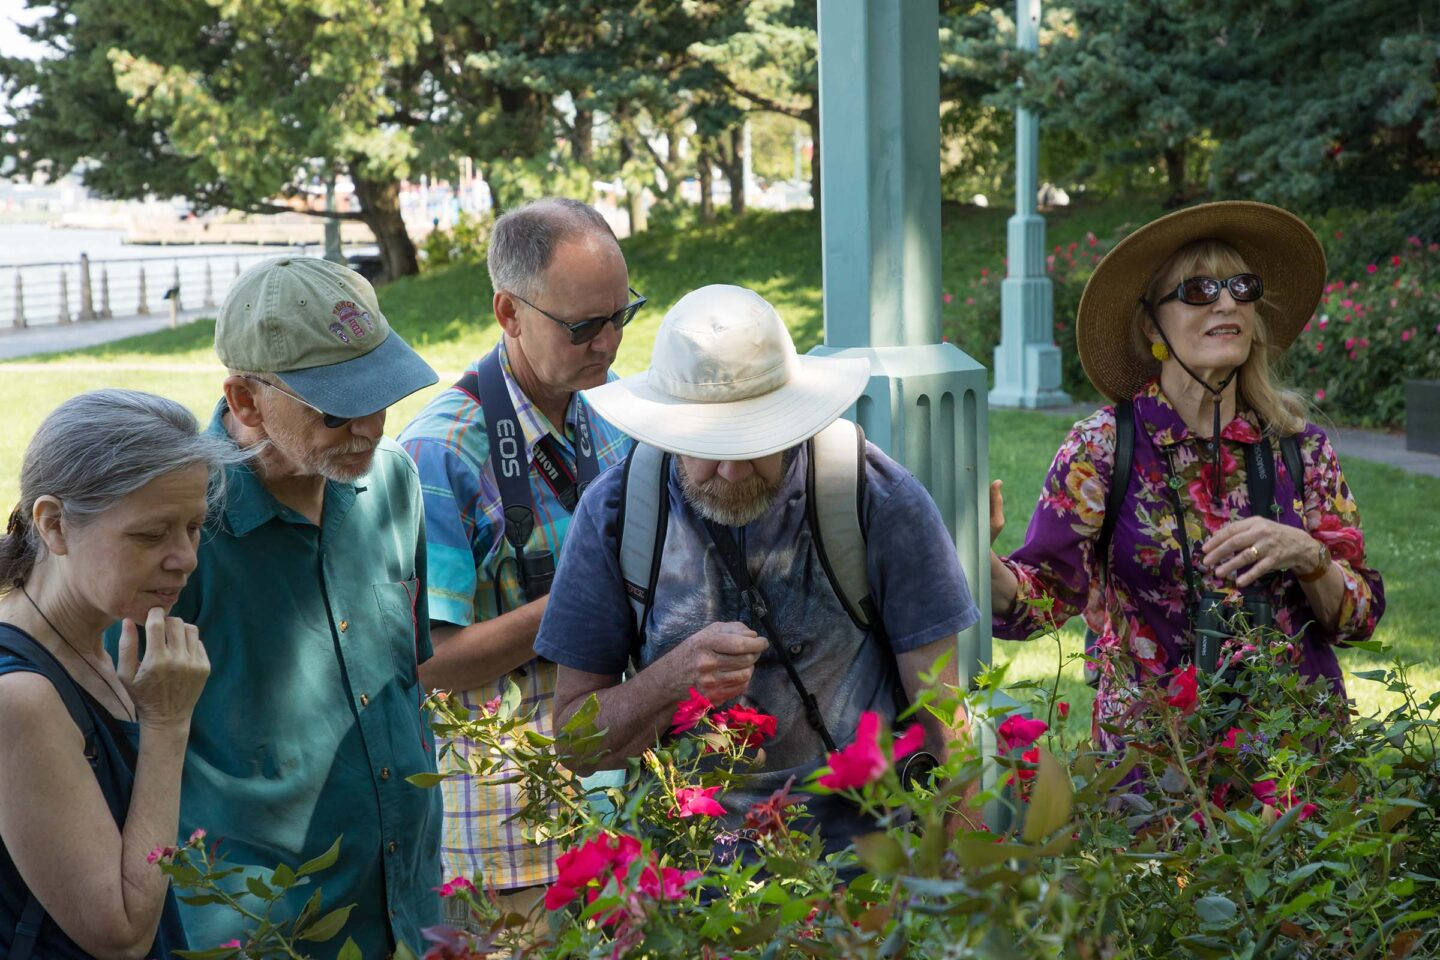 A group walk through the gardens and see nature in the Park